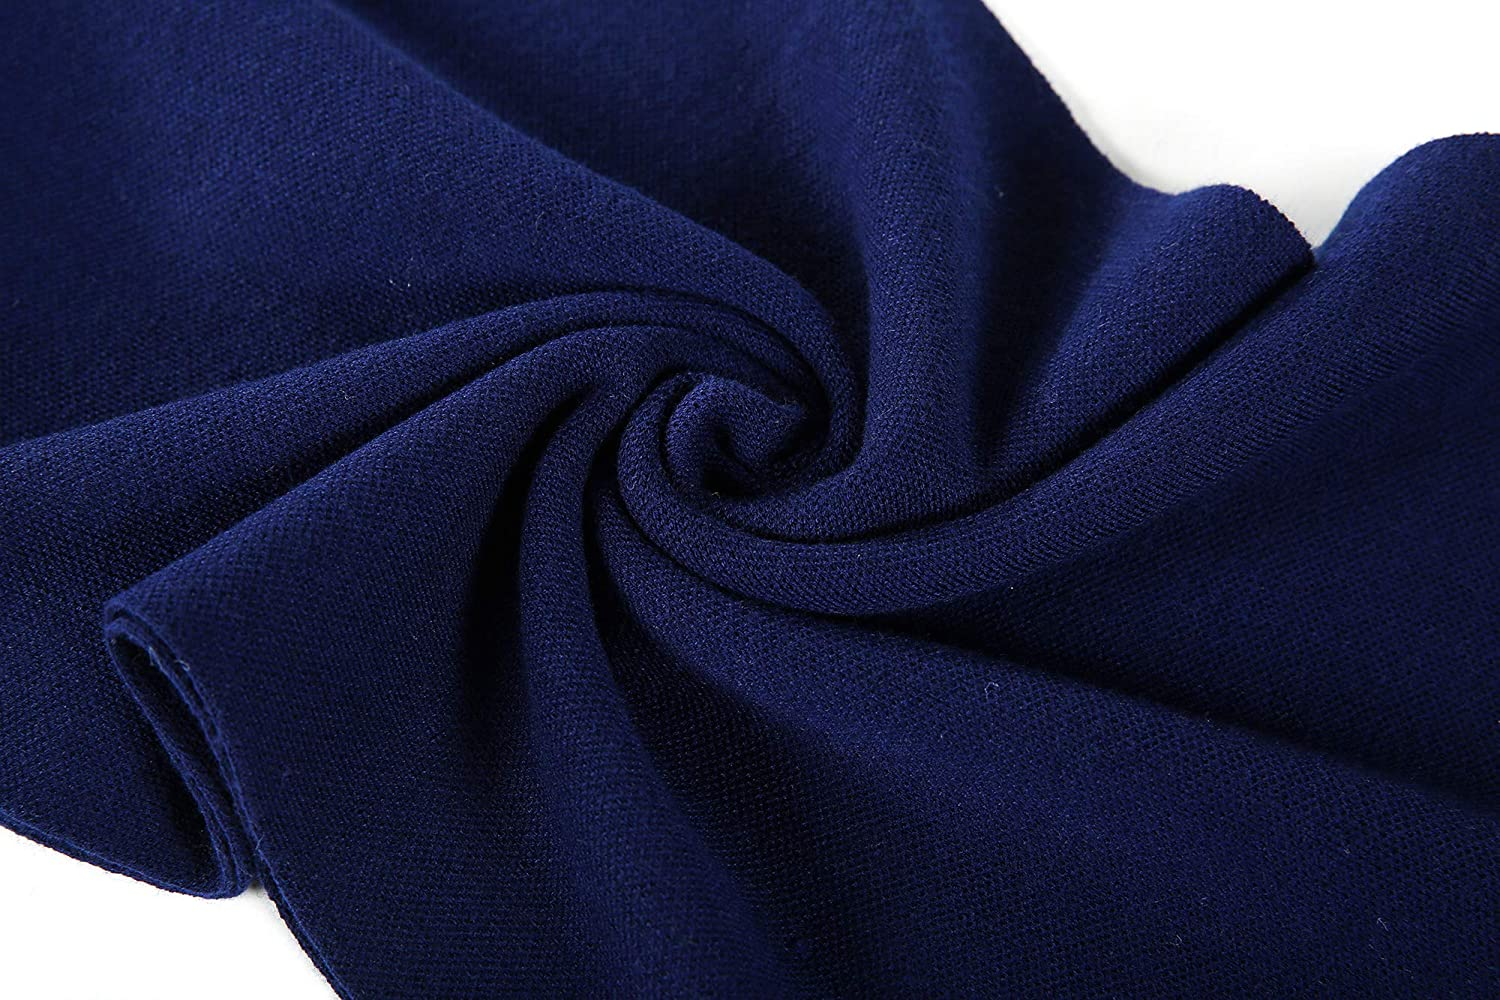 Dovava Mens Australia Merino Wool Scarf Warm Winter Classic Soft Knitted Long Thermal Neck Scarves